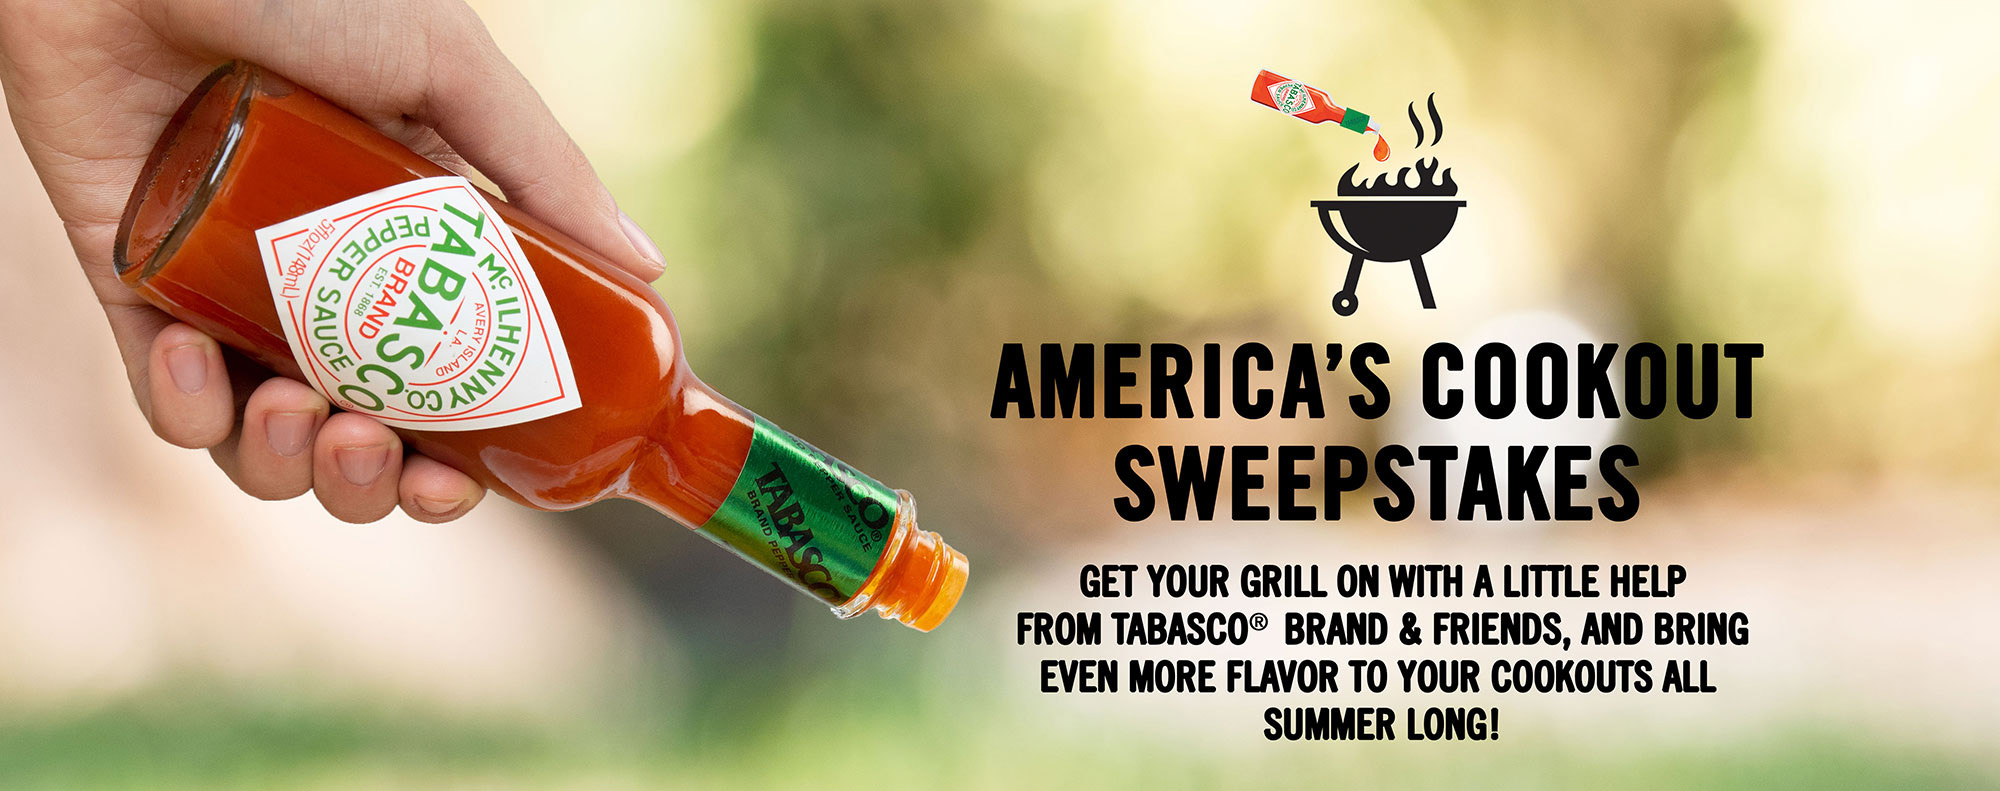 Enter the Tabasco America's Cookout Sweepstakes for a chance to win an amazing weekly grilling prize pack, courtesy of TABASCO® Brand & friends. There will be 213 winners and one grand prize winner.